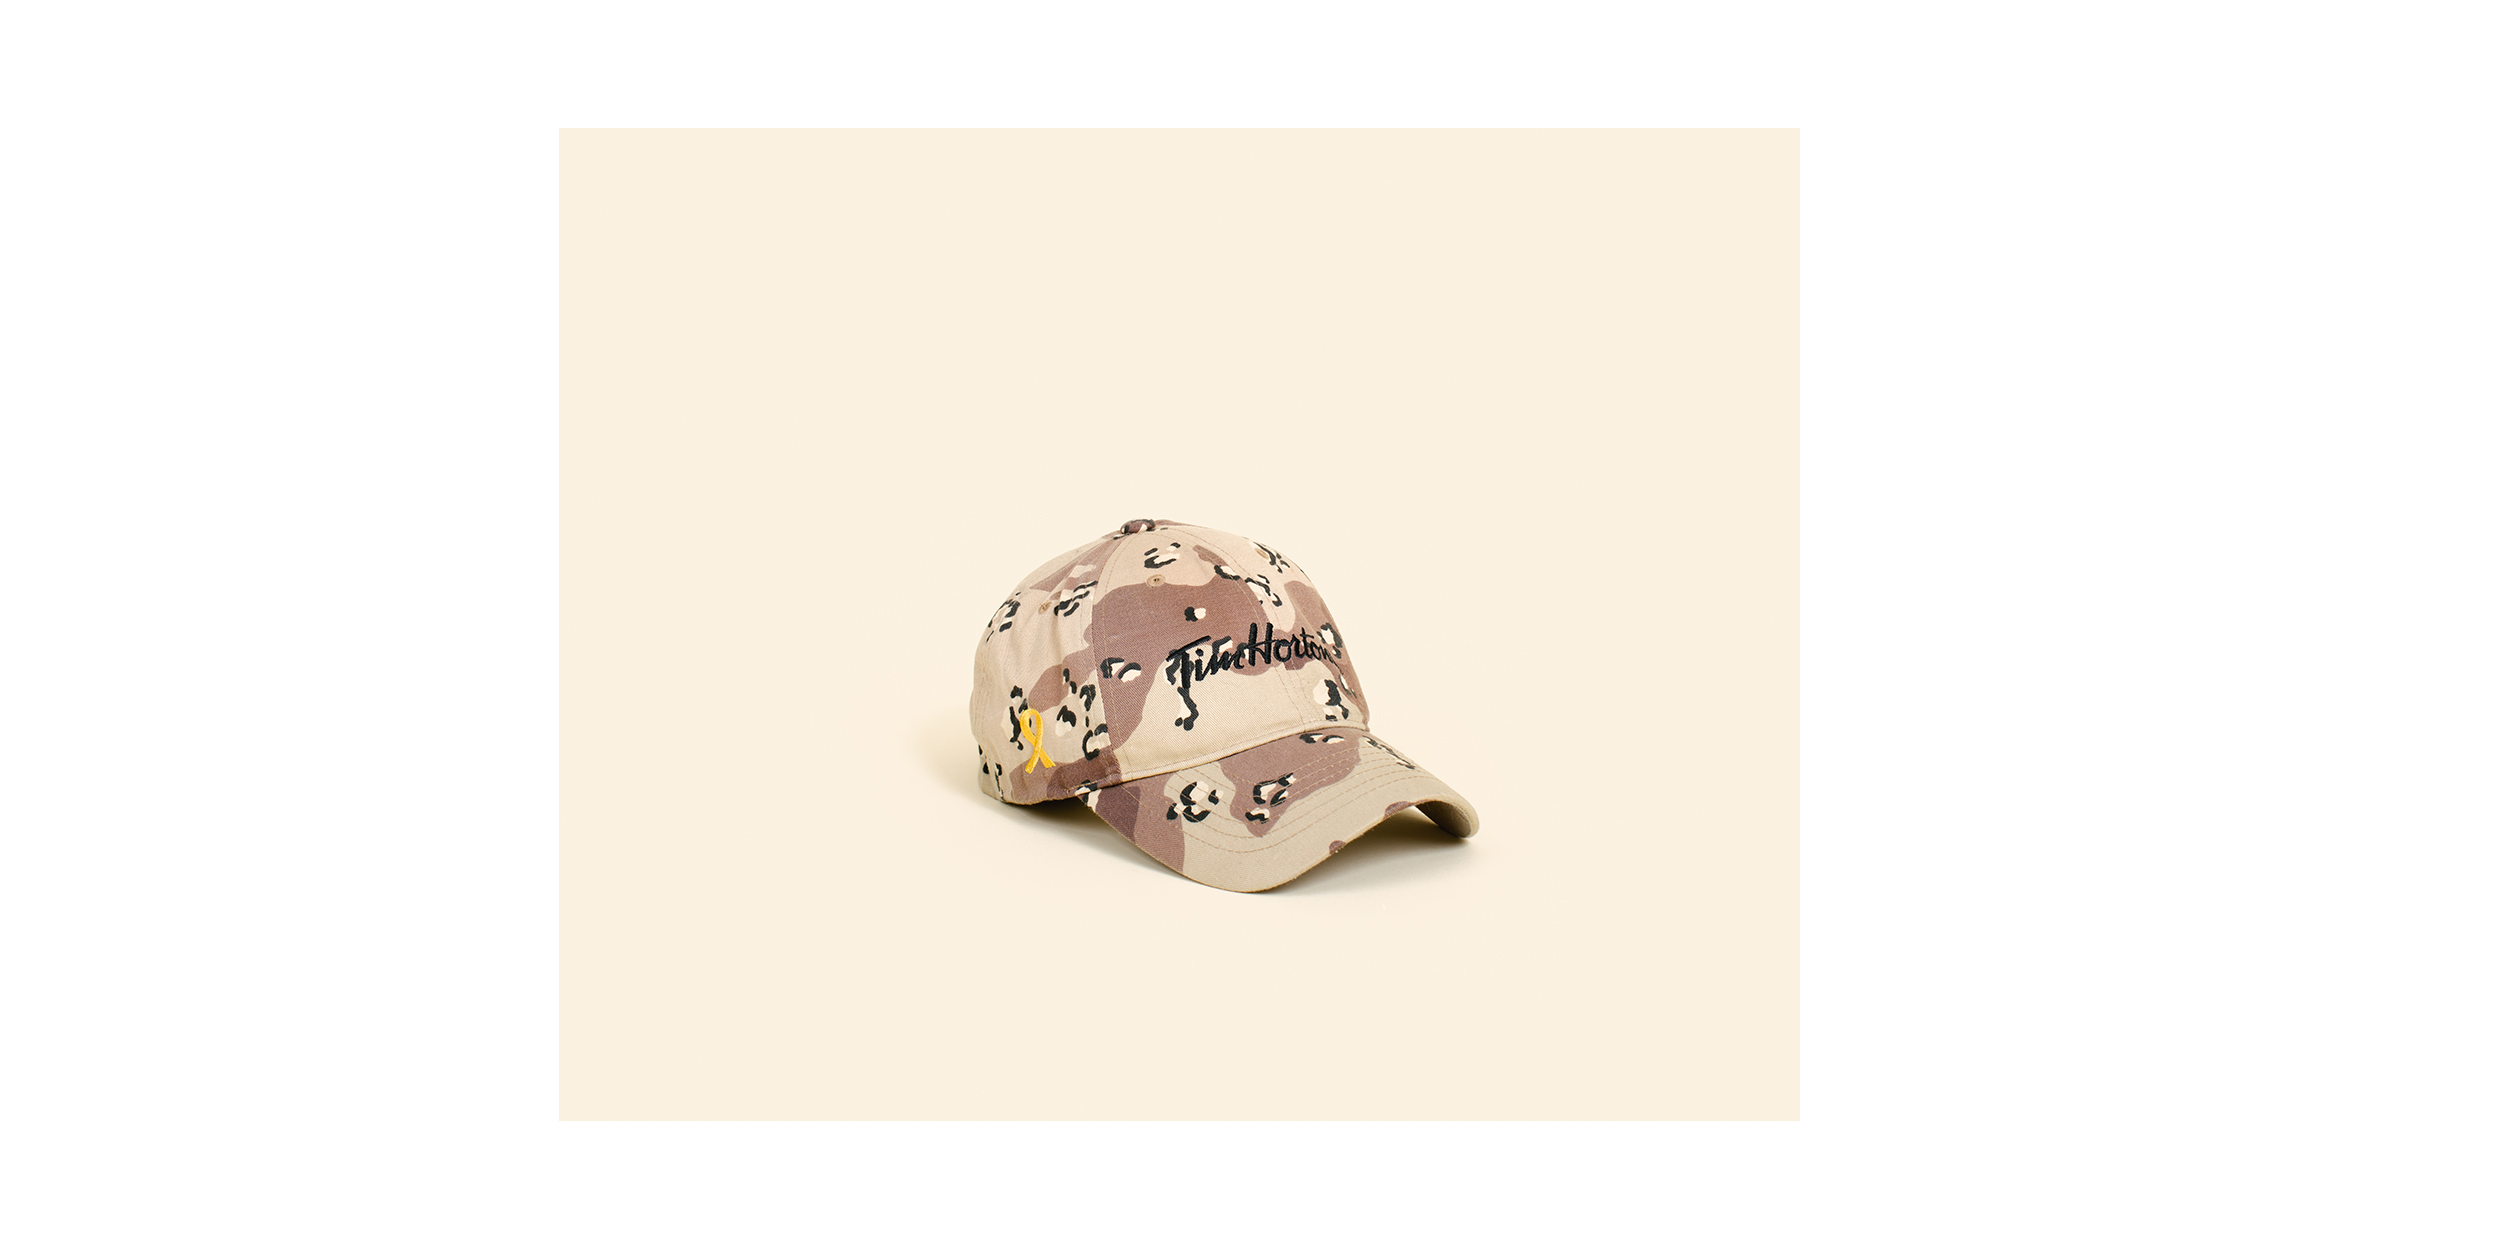 Tim Hortons camouflage cap - a highly coveted souvenir by soldiers and contractors serving at Kandahar Airfield.  Since opening in Kandahar Airfield in 2006, the popular Canadian coffee shop Tim Hortons has served four million cups of coffee, three million donuts and half a million iced cappuccinos and bagels to 2.5 million customers. After five years of serving customers from 37 different nationalities, the Tim Hortons outlet in Afghanistan closed in 2011.